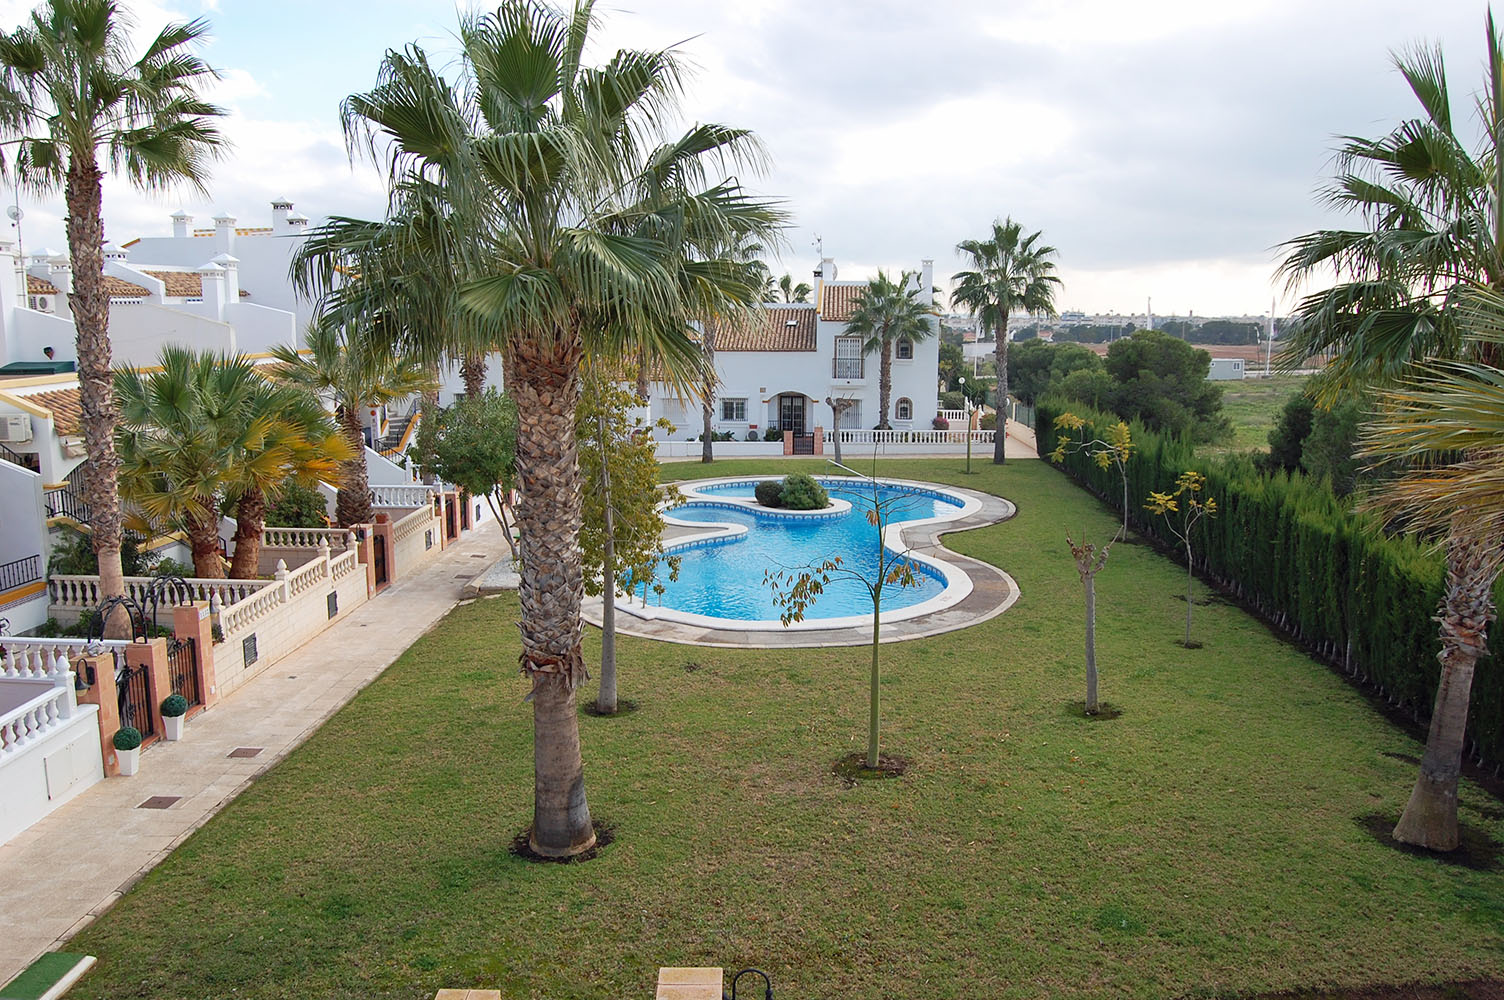 ITSH Property View from balcony o fthe Los Dolses apartment to the communal pool 2